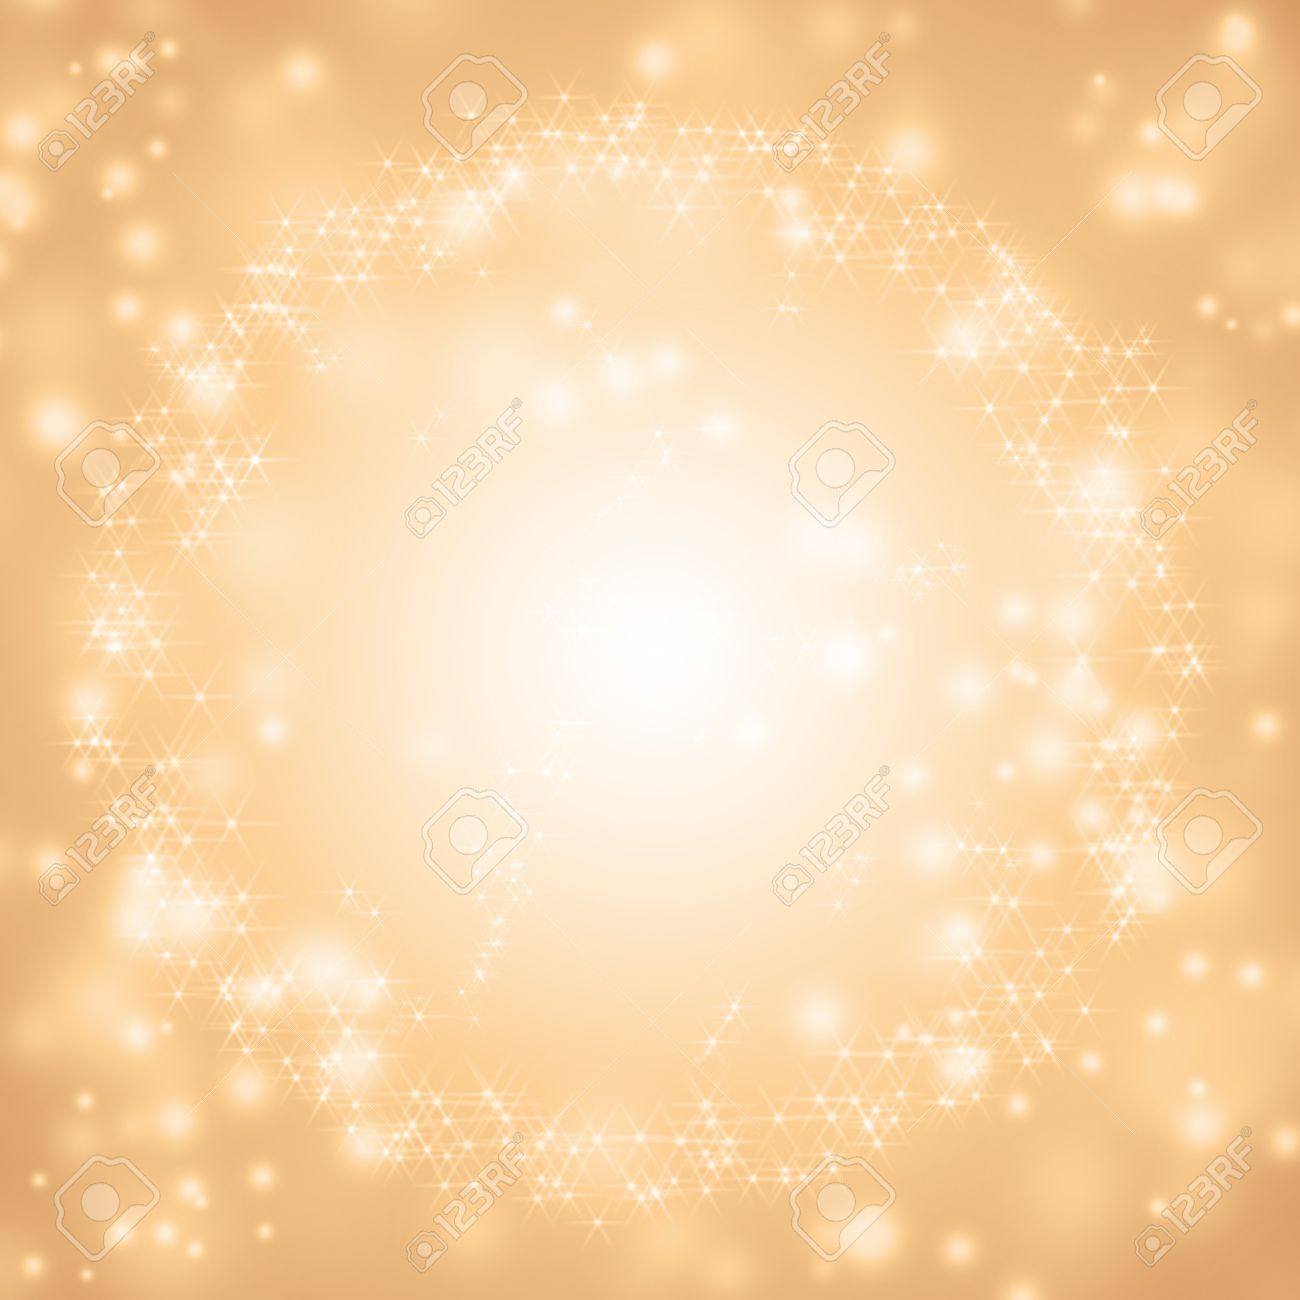 Sparkling Gold Seasonal Holiday Background With White Lights Stock ...